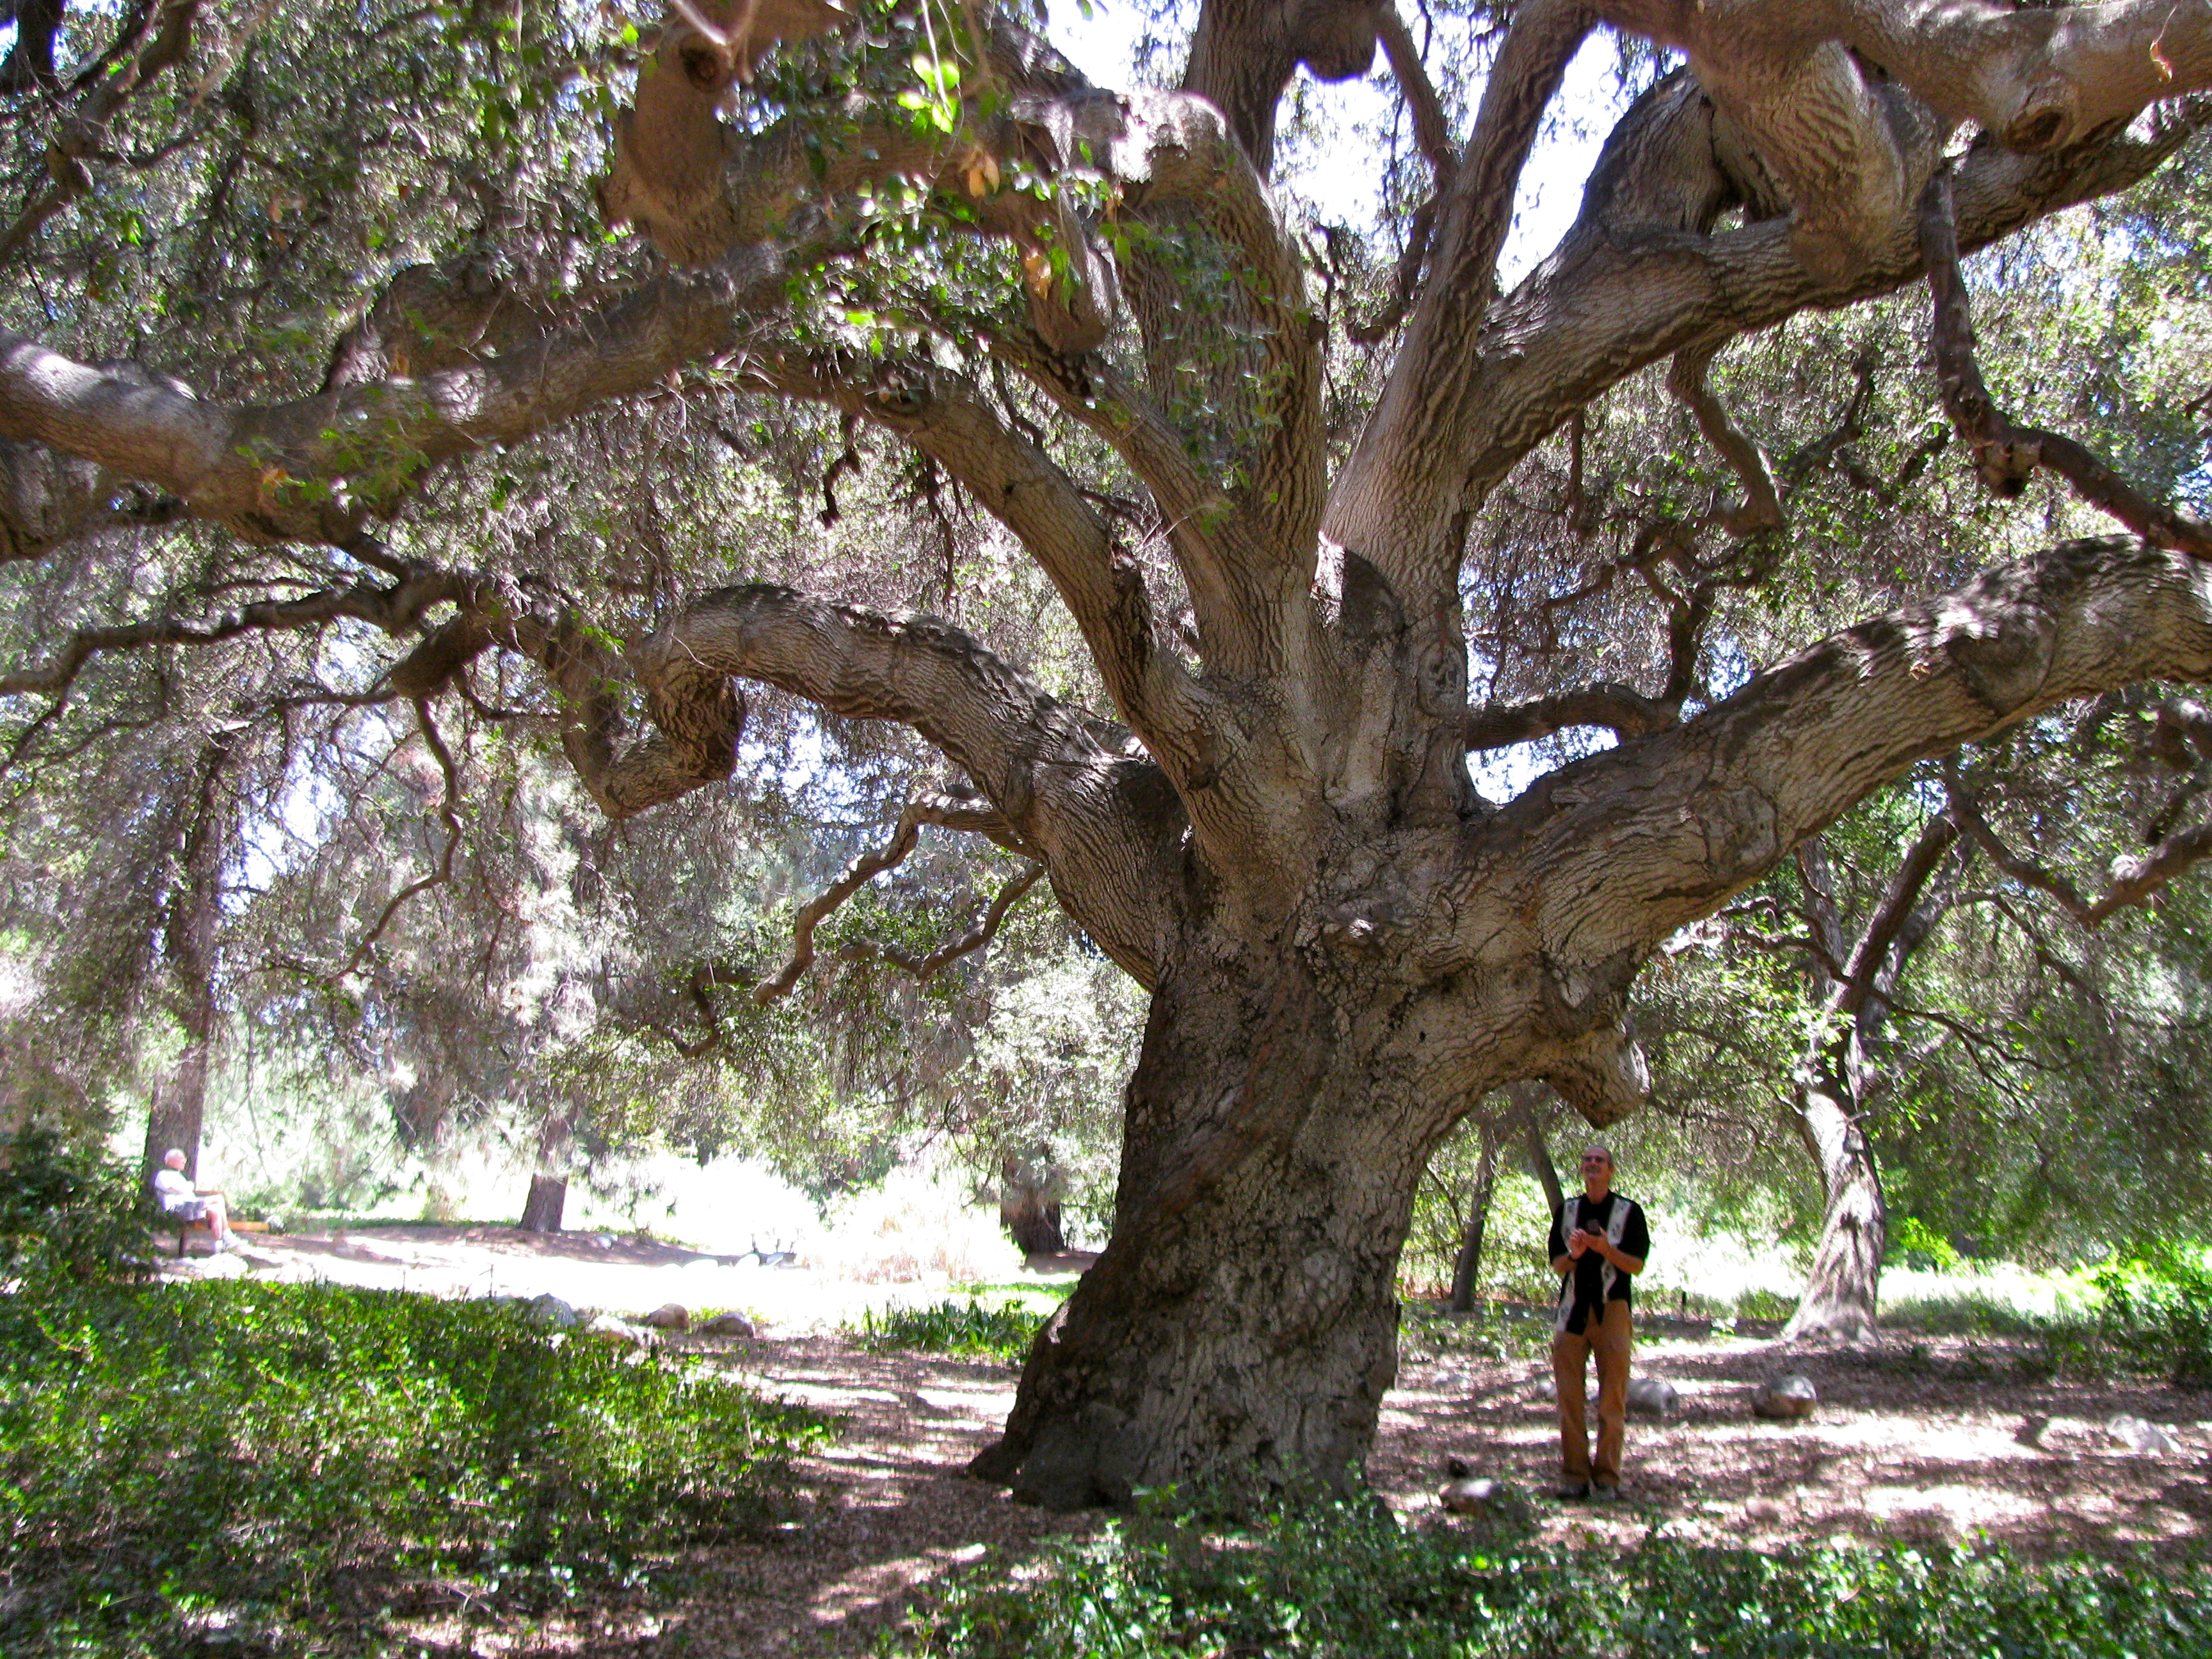 Taking Care Of Our California Native Oaks If Nature